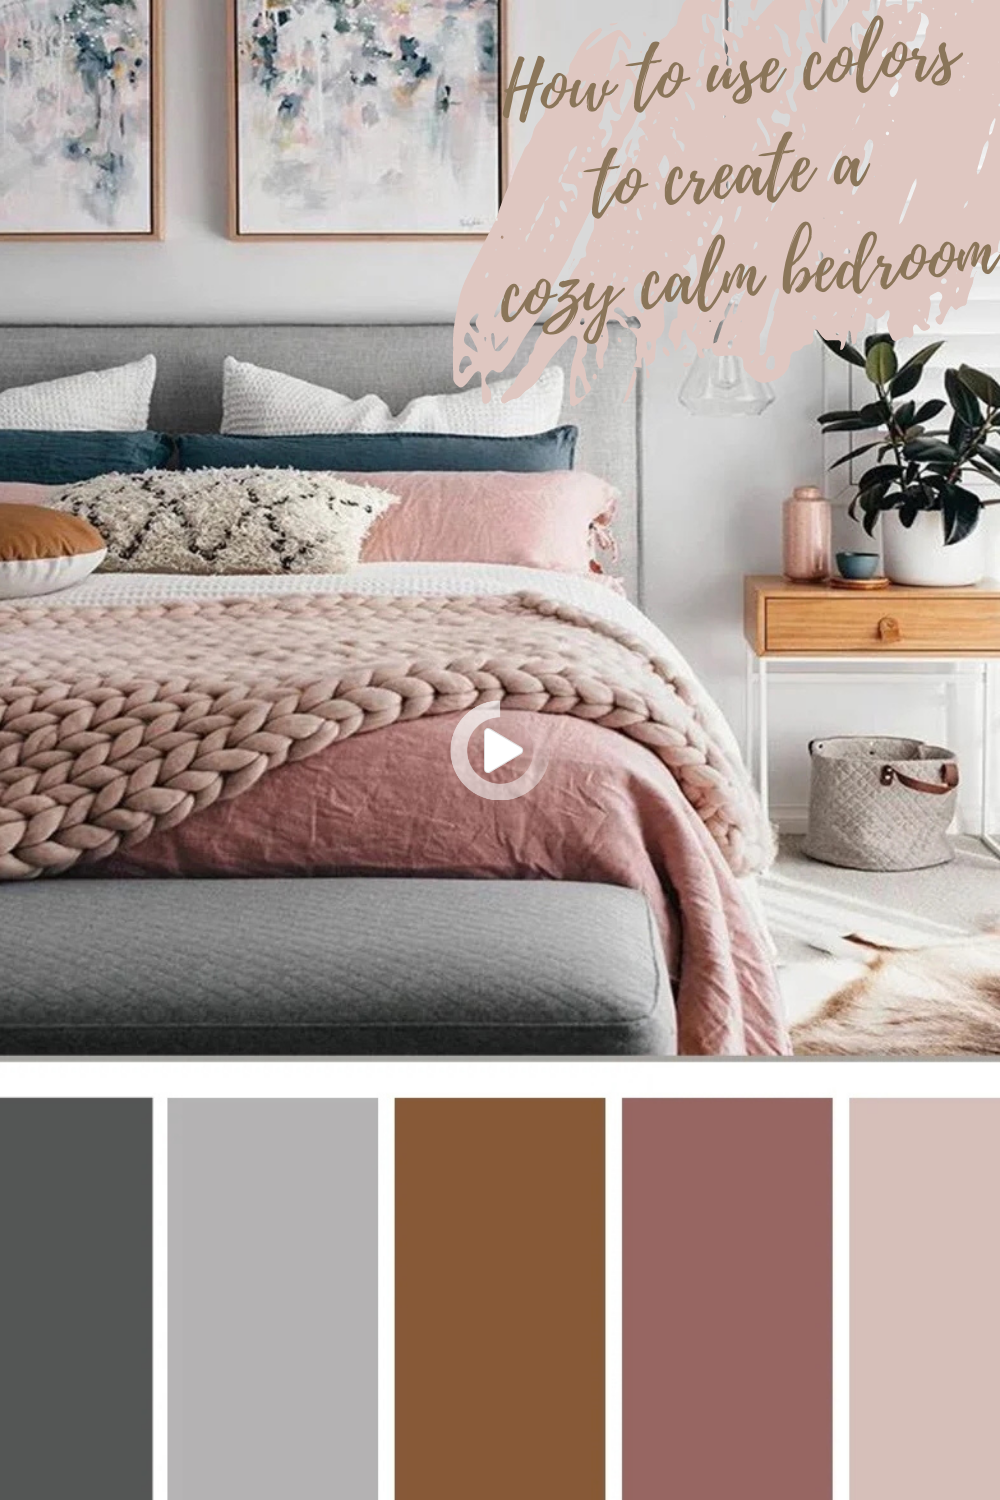 How To Use Colors To Create A Cozy & Calm Bedroom in 20 ...